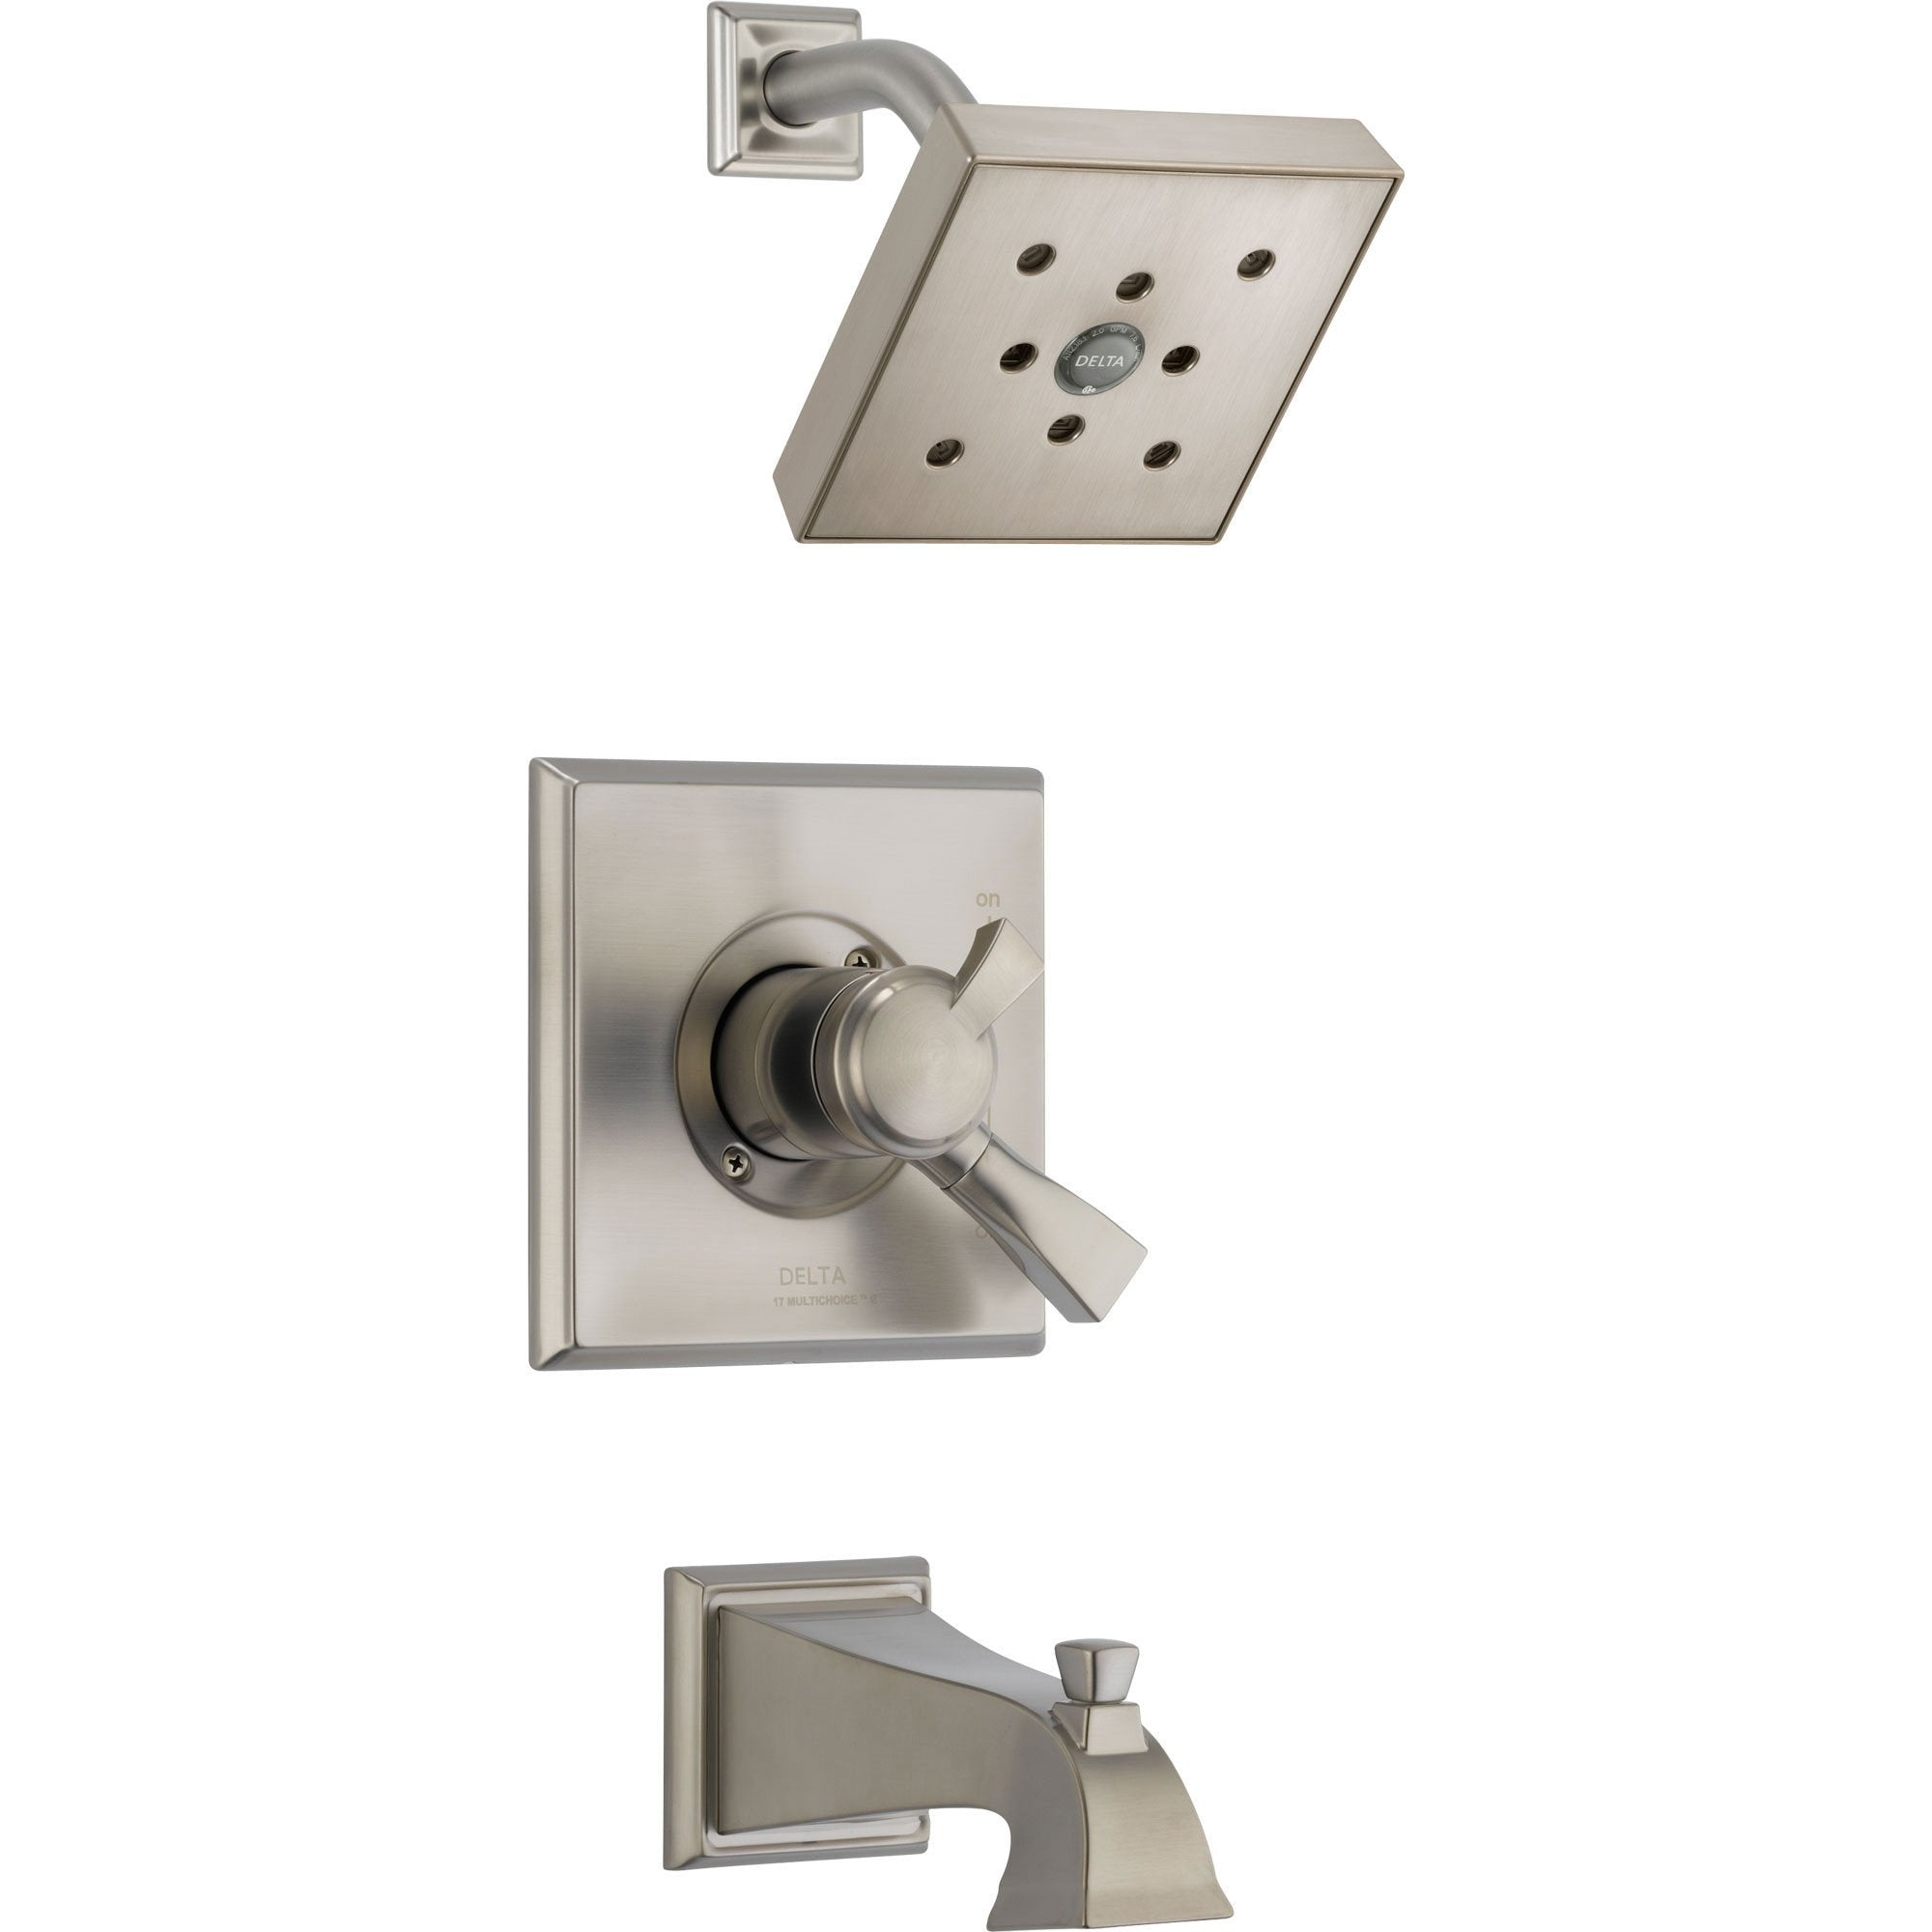 Delta Dryden Temp/Volume Tub & Shower Faucet with Valve in Stainless Steel D377V